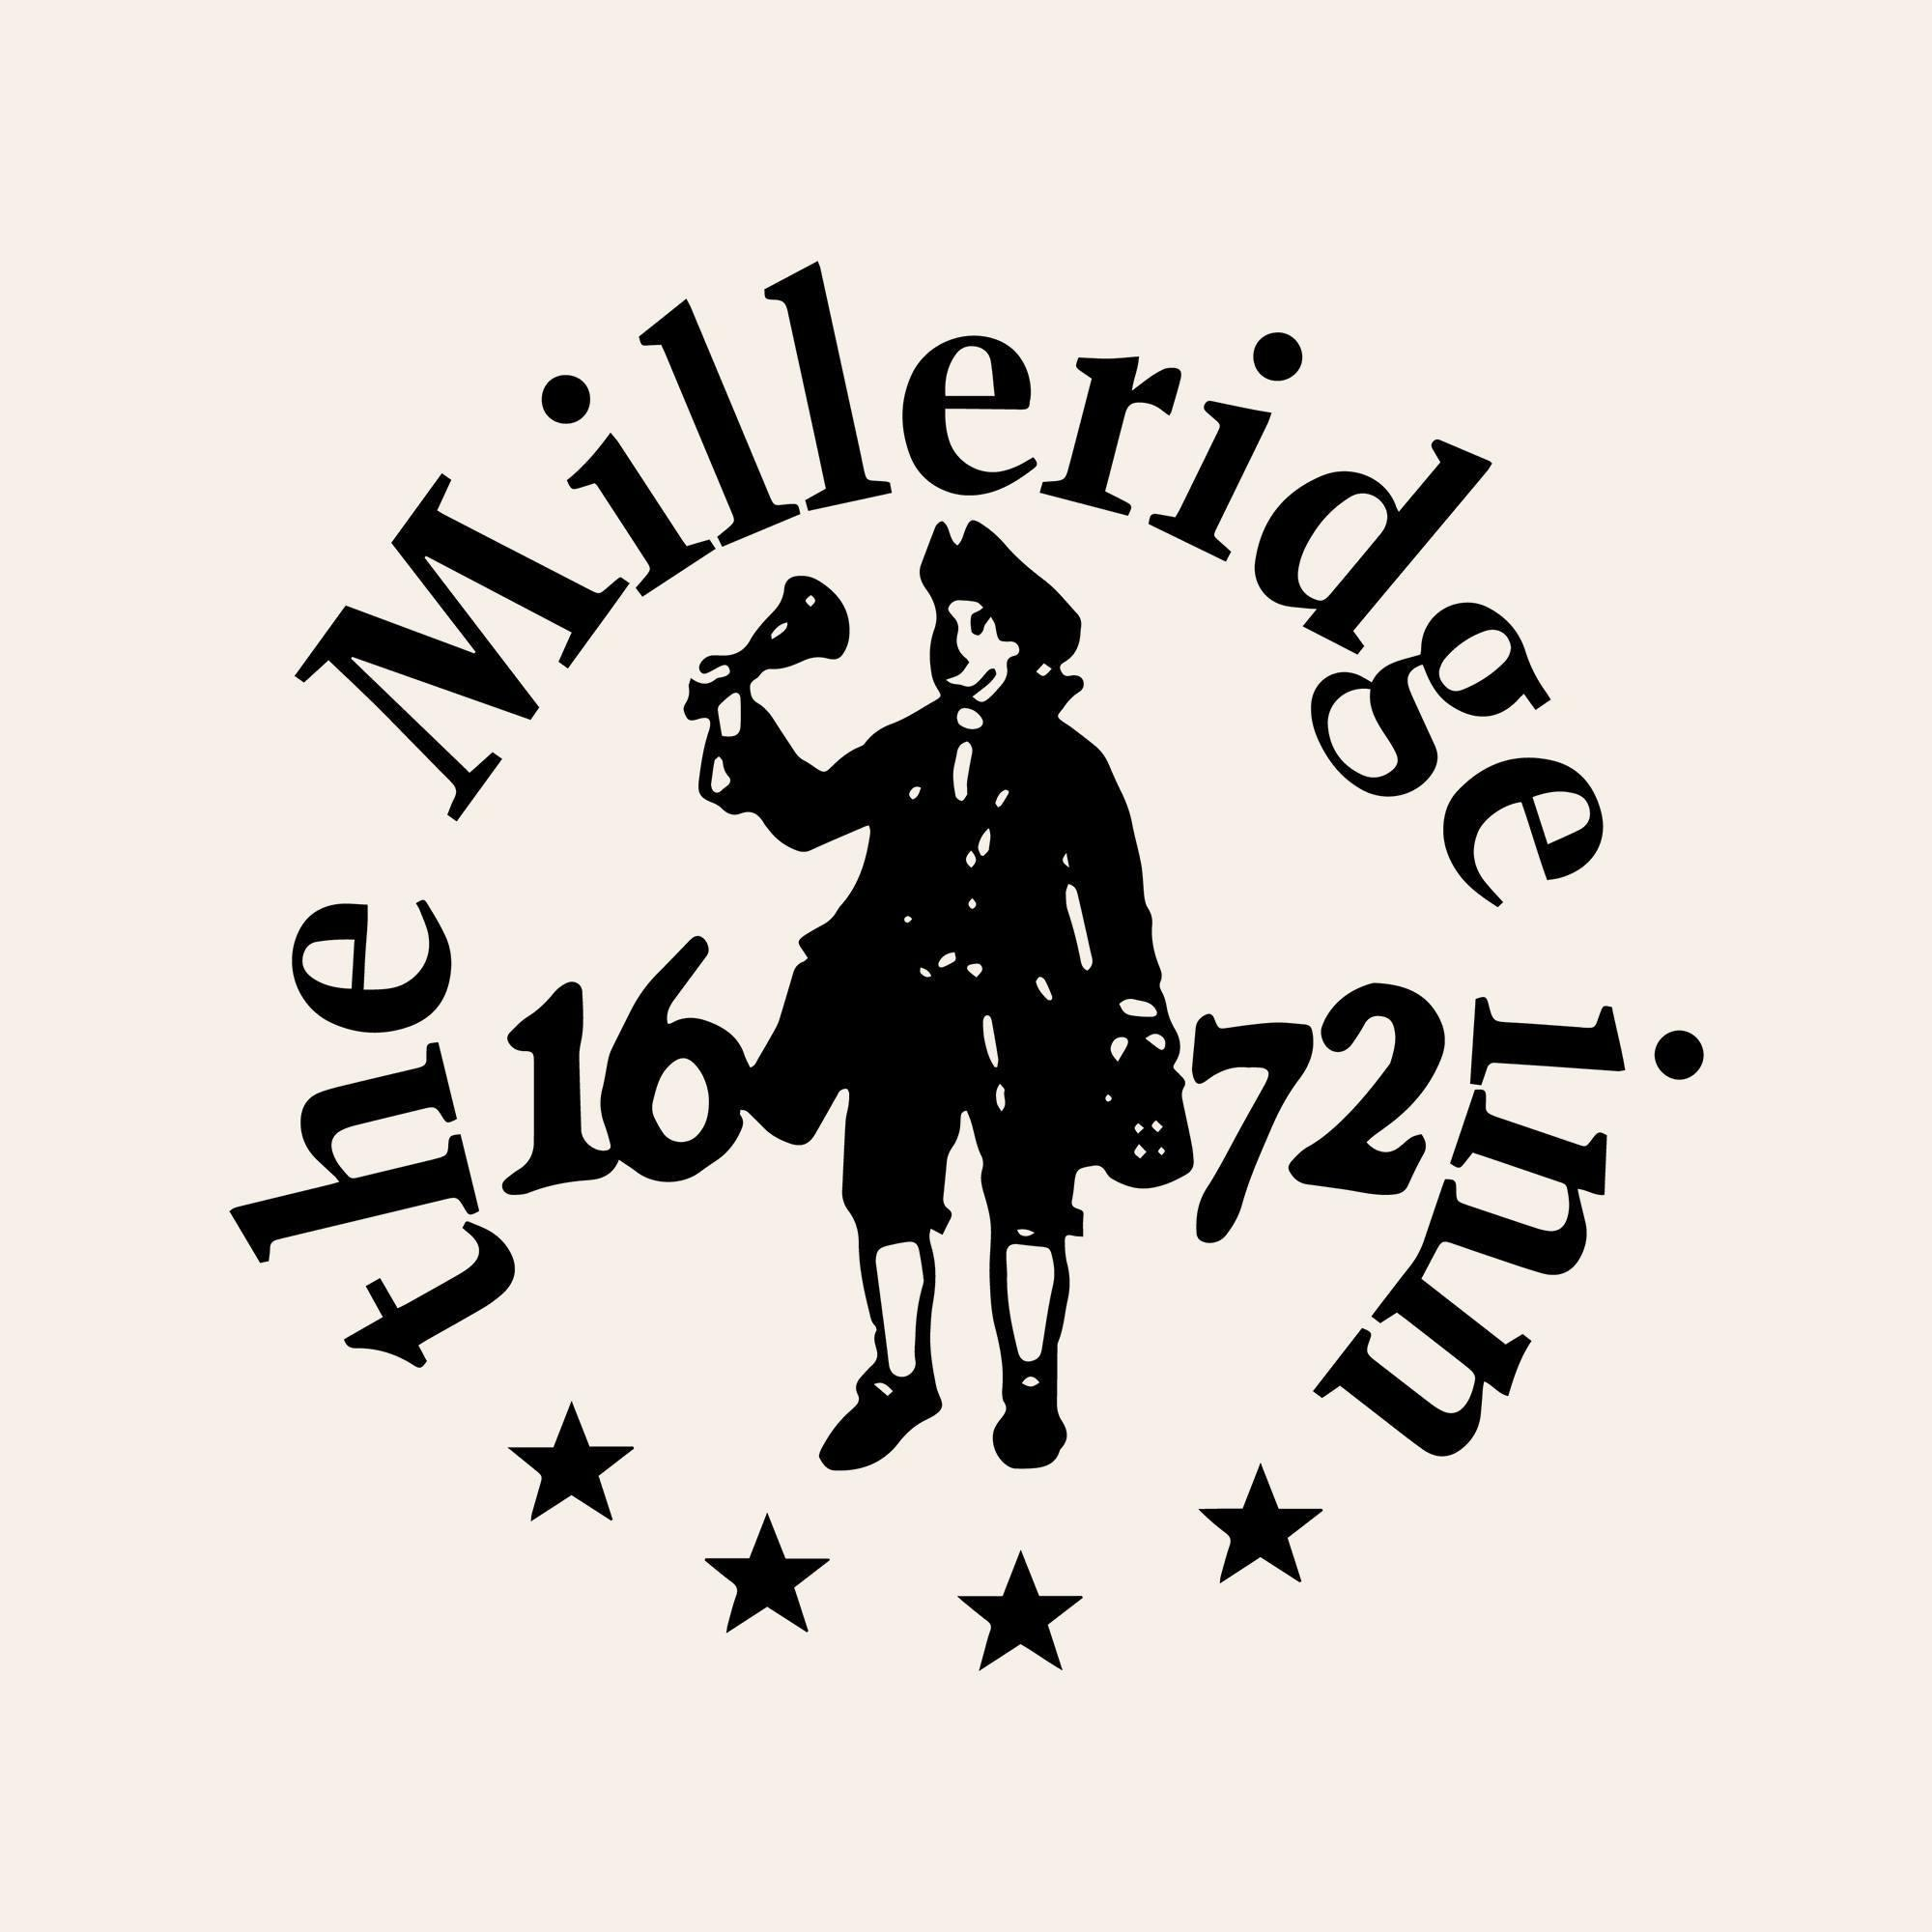 The Milleridge Inn